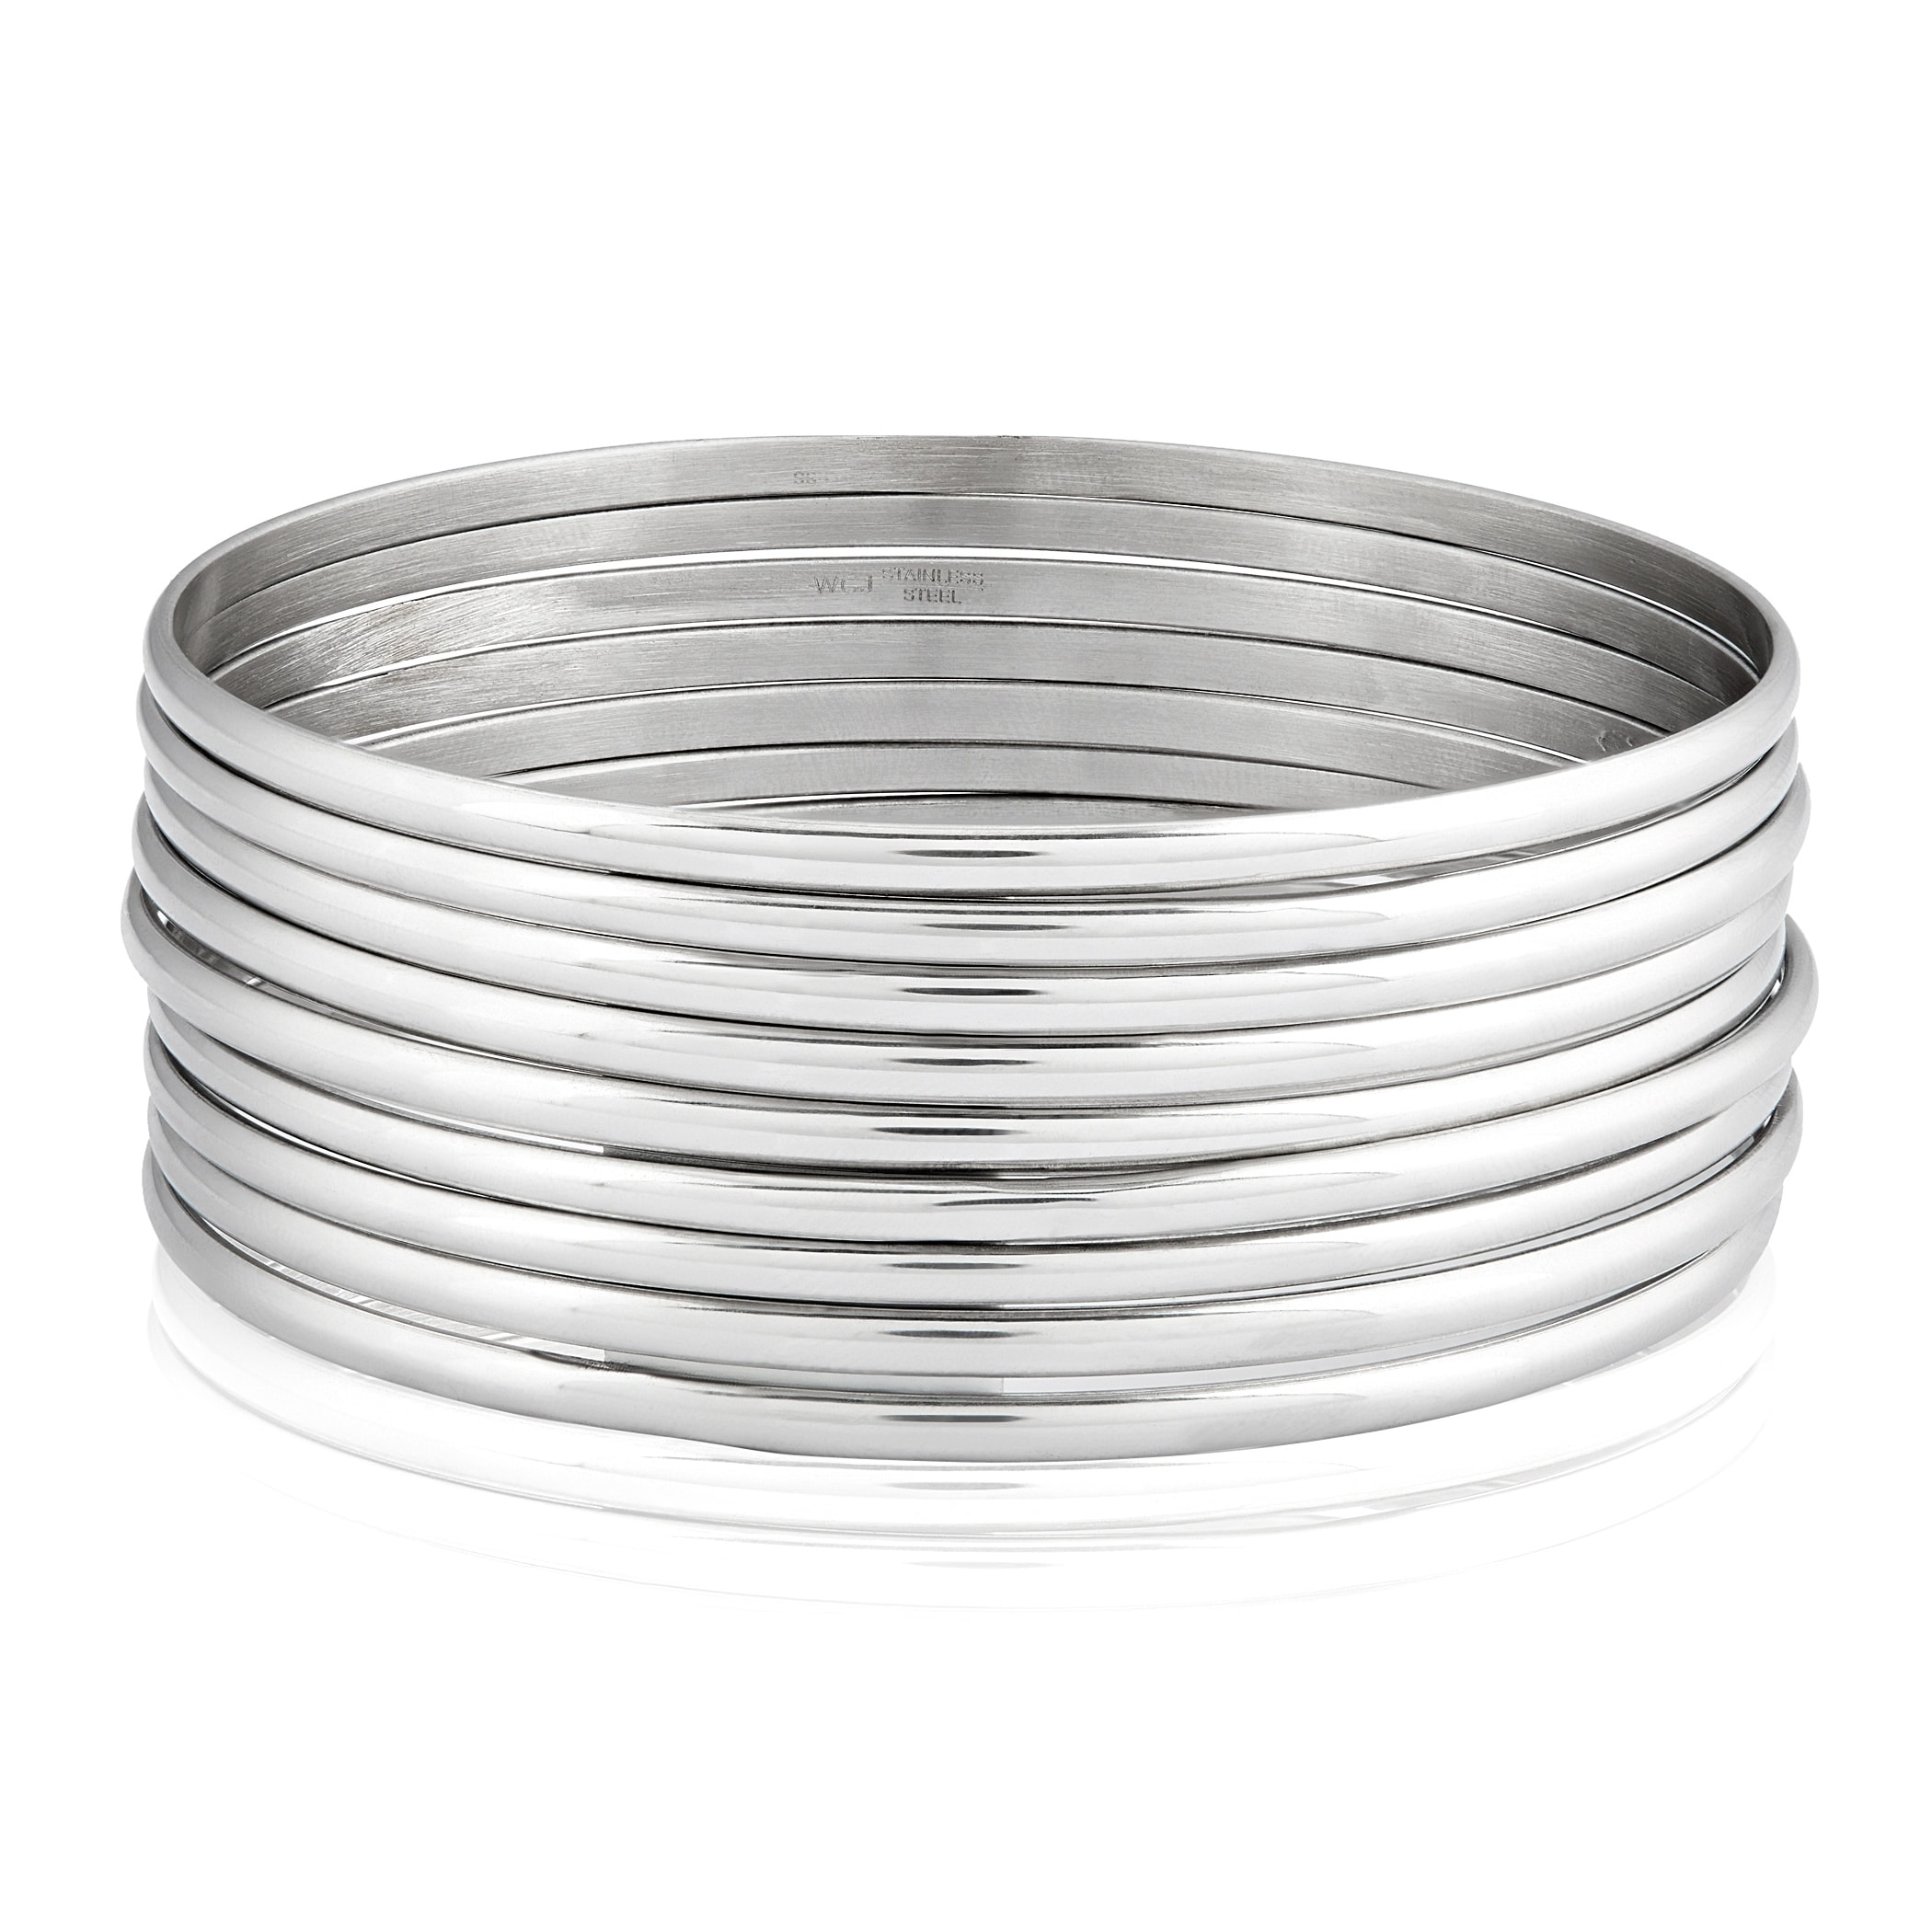 john bracelets products bangle s brushed tapered aluminum brana anticlastic bracelet wide bangles johnsbrana